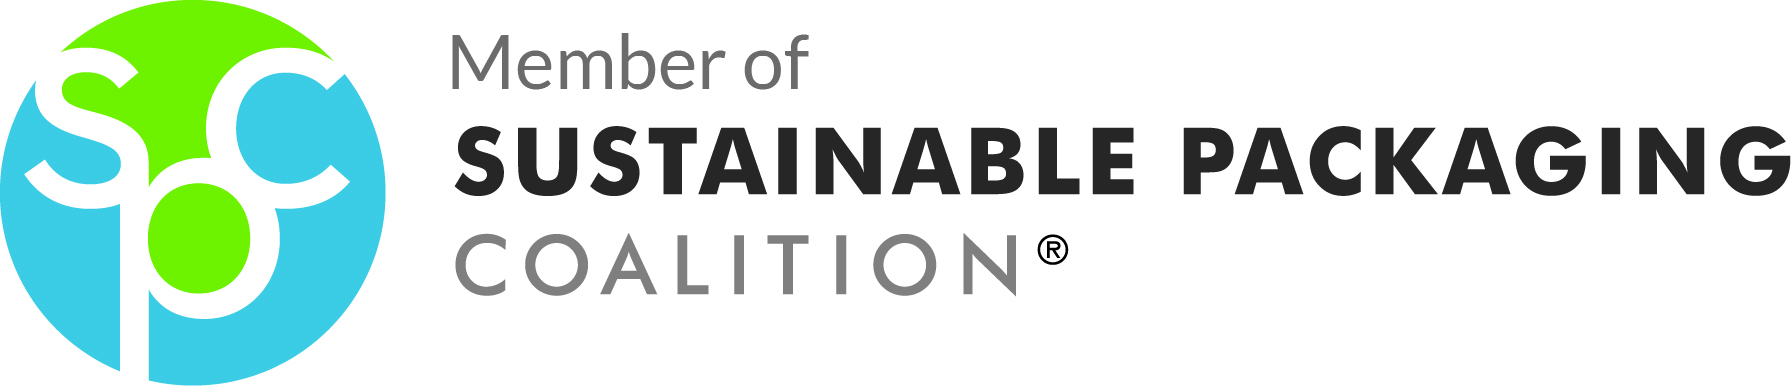 Member of Sustainable Packaging Coalition